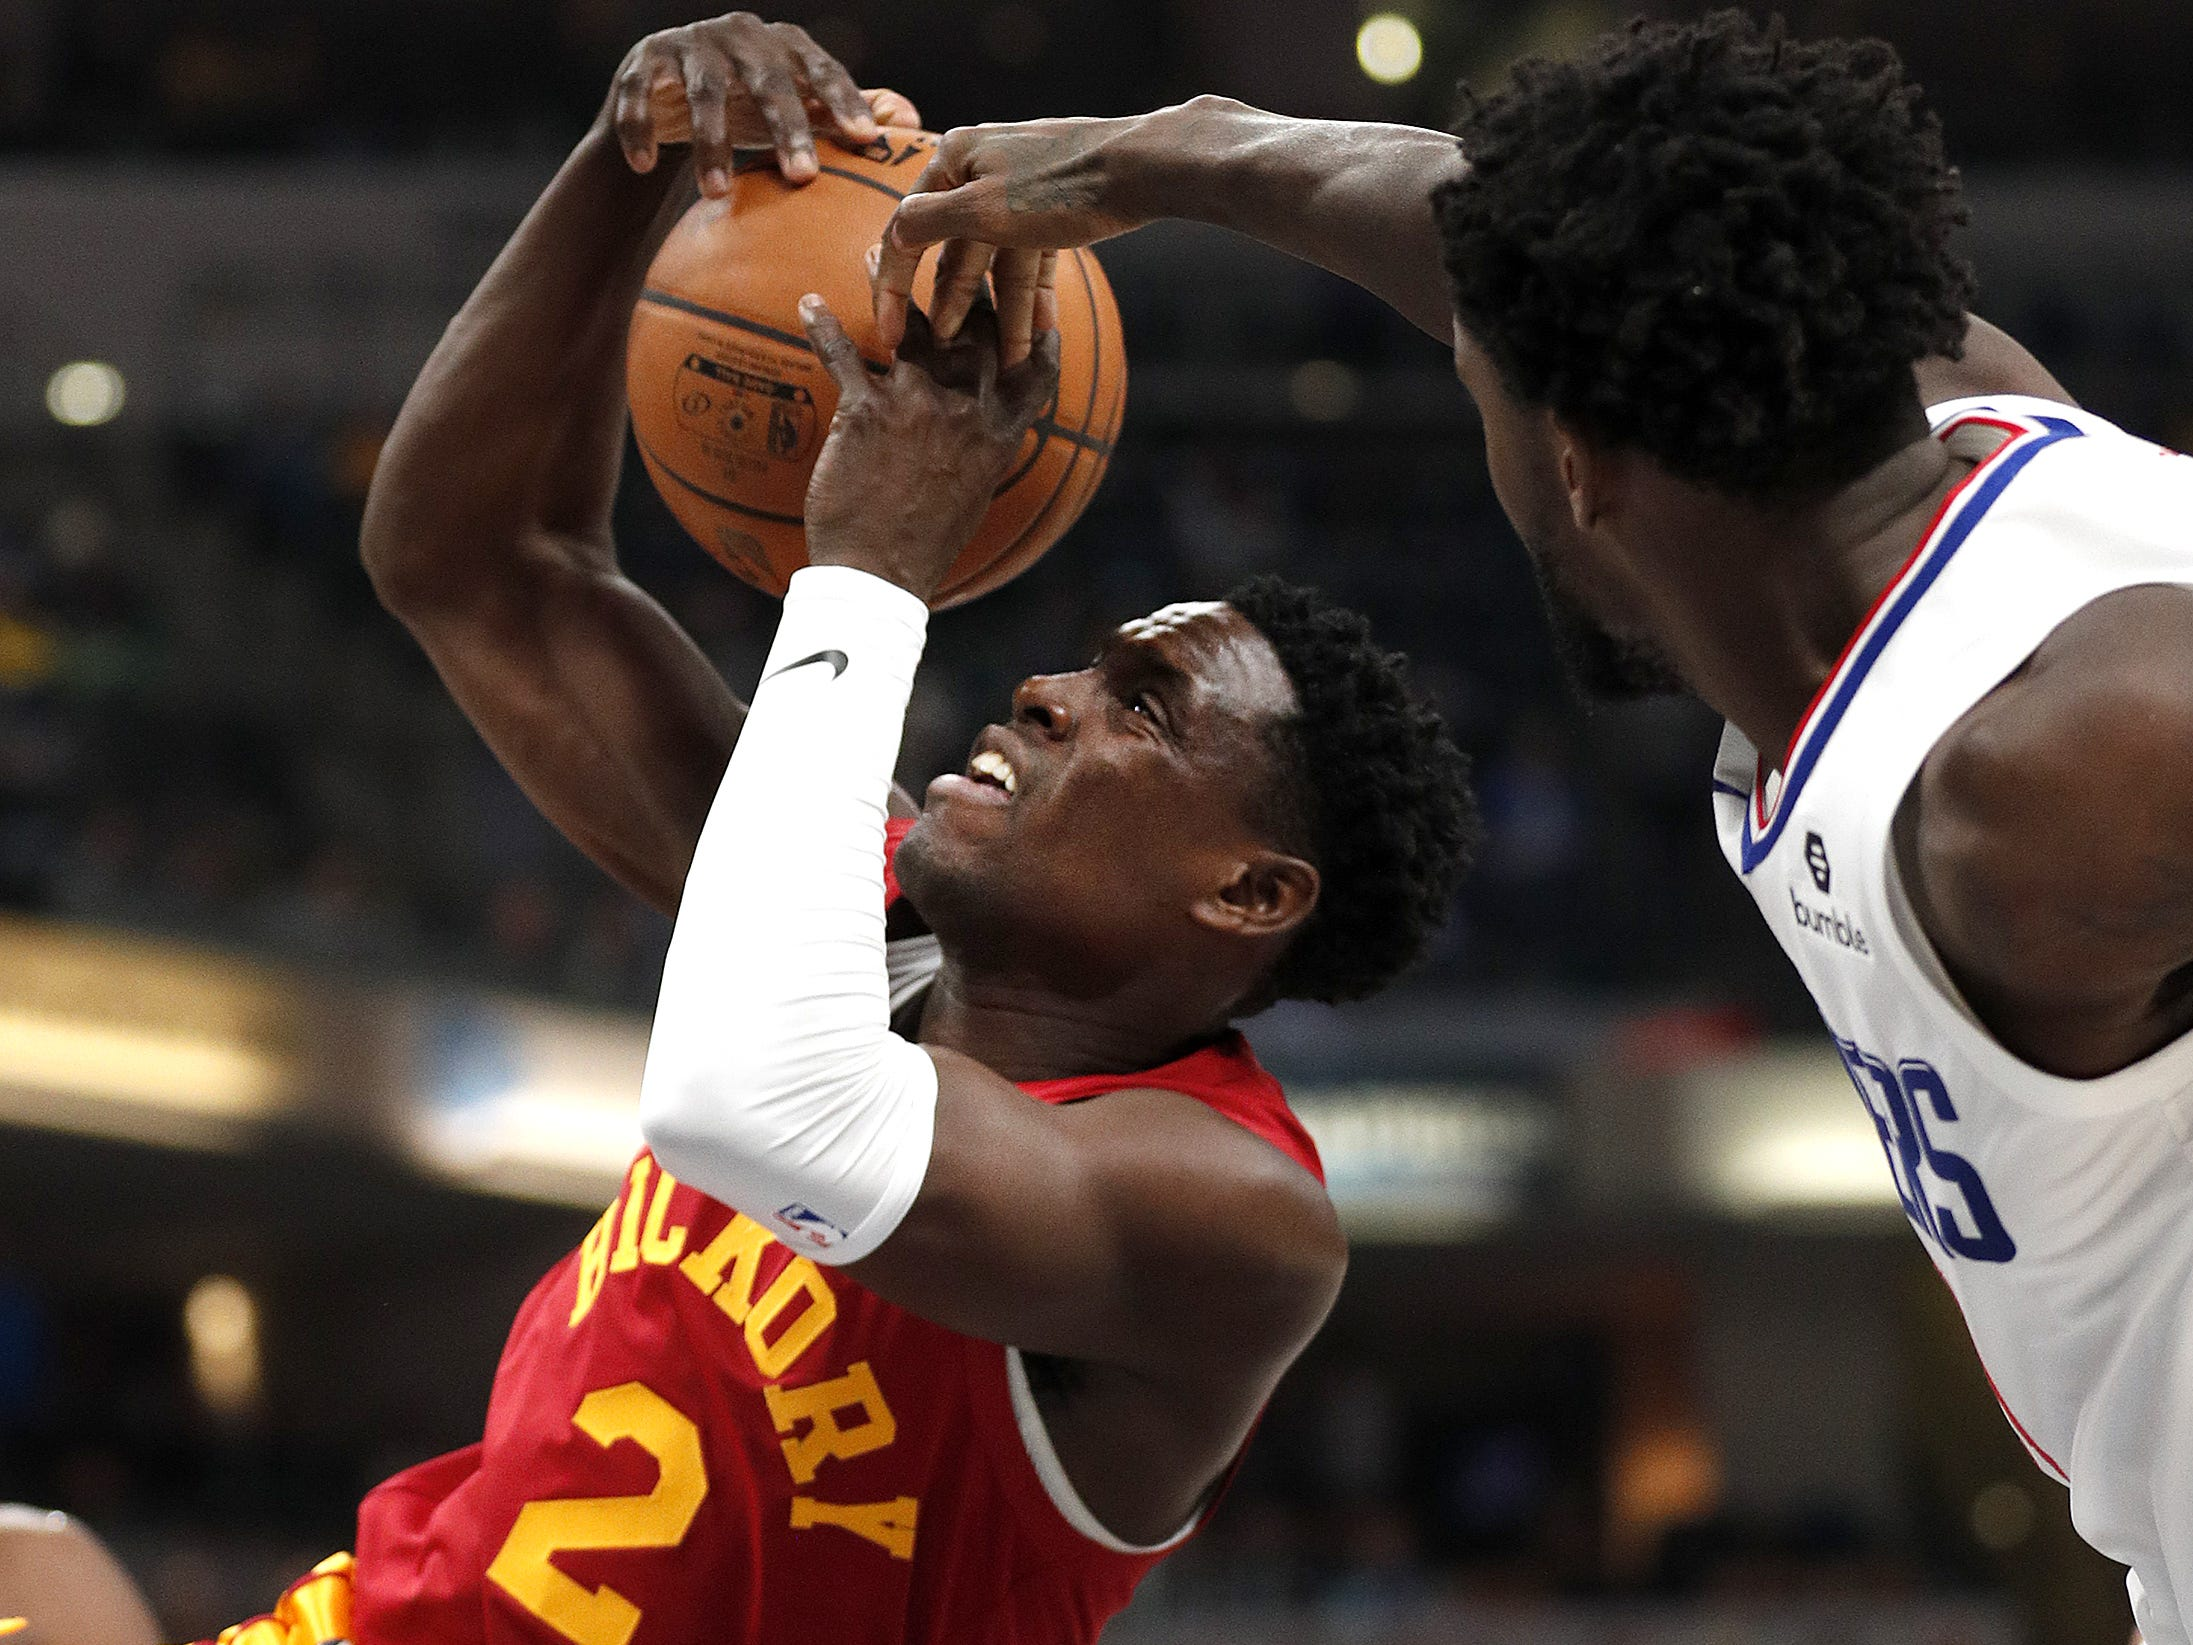 Indiana Pacers guard Darren Collison (2) has his shot blocked by LA Clippers guard Patrick Beverley (21) in the first half of their game at Bankers Life Fieldhouse on Thursday, Feb. 7, 2019.